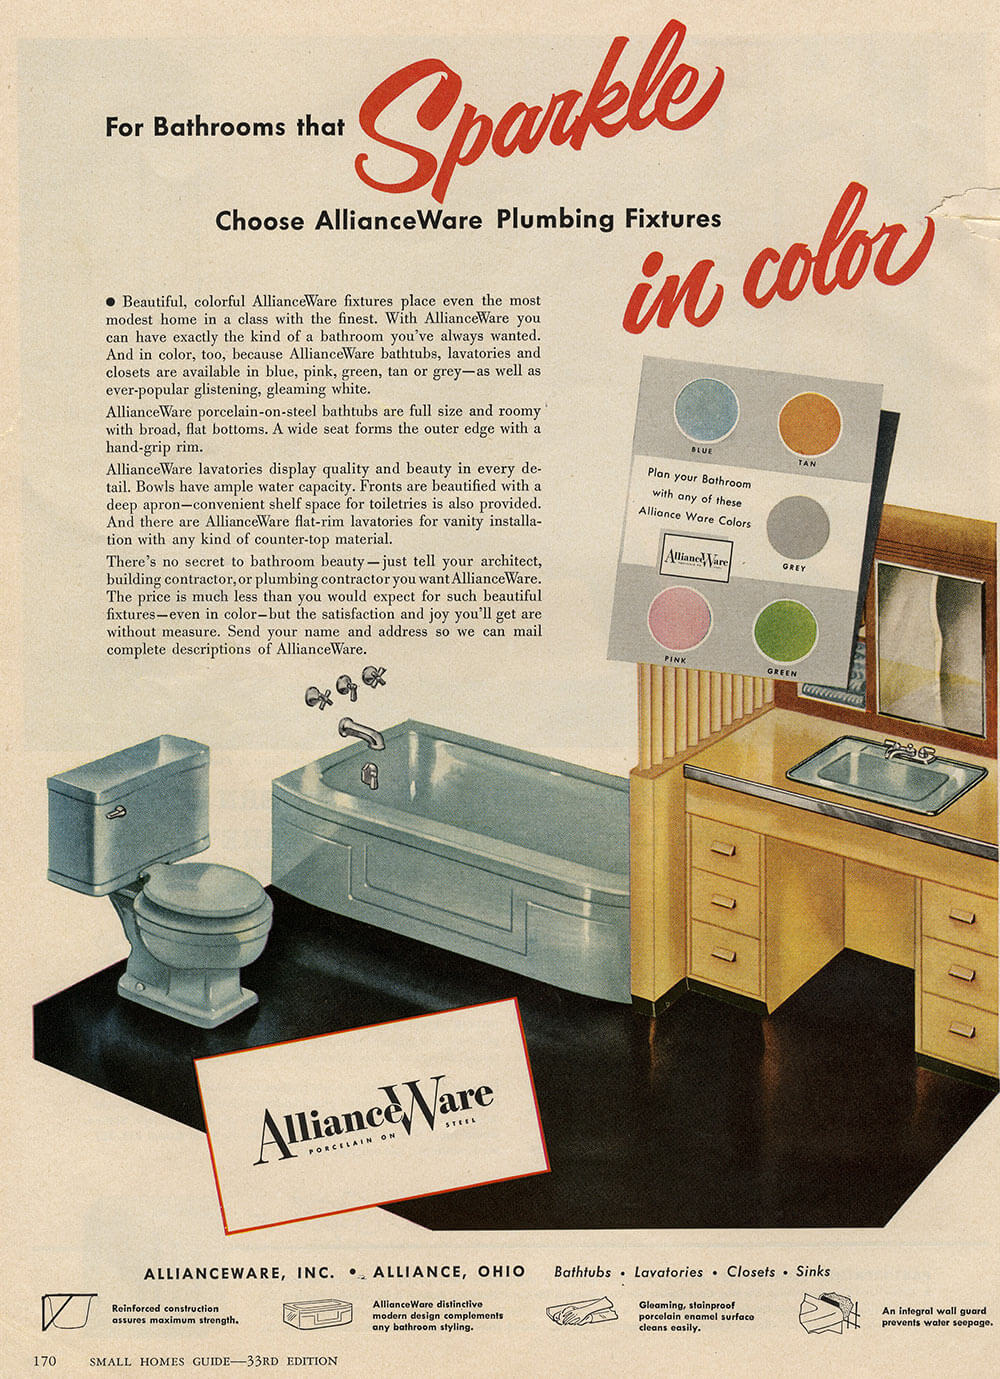 The Color Gray In Vintage Bathrooms From 1927 To 1962